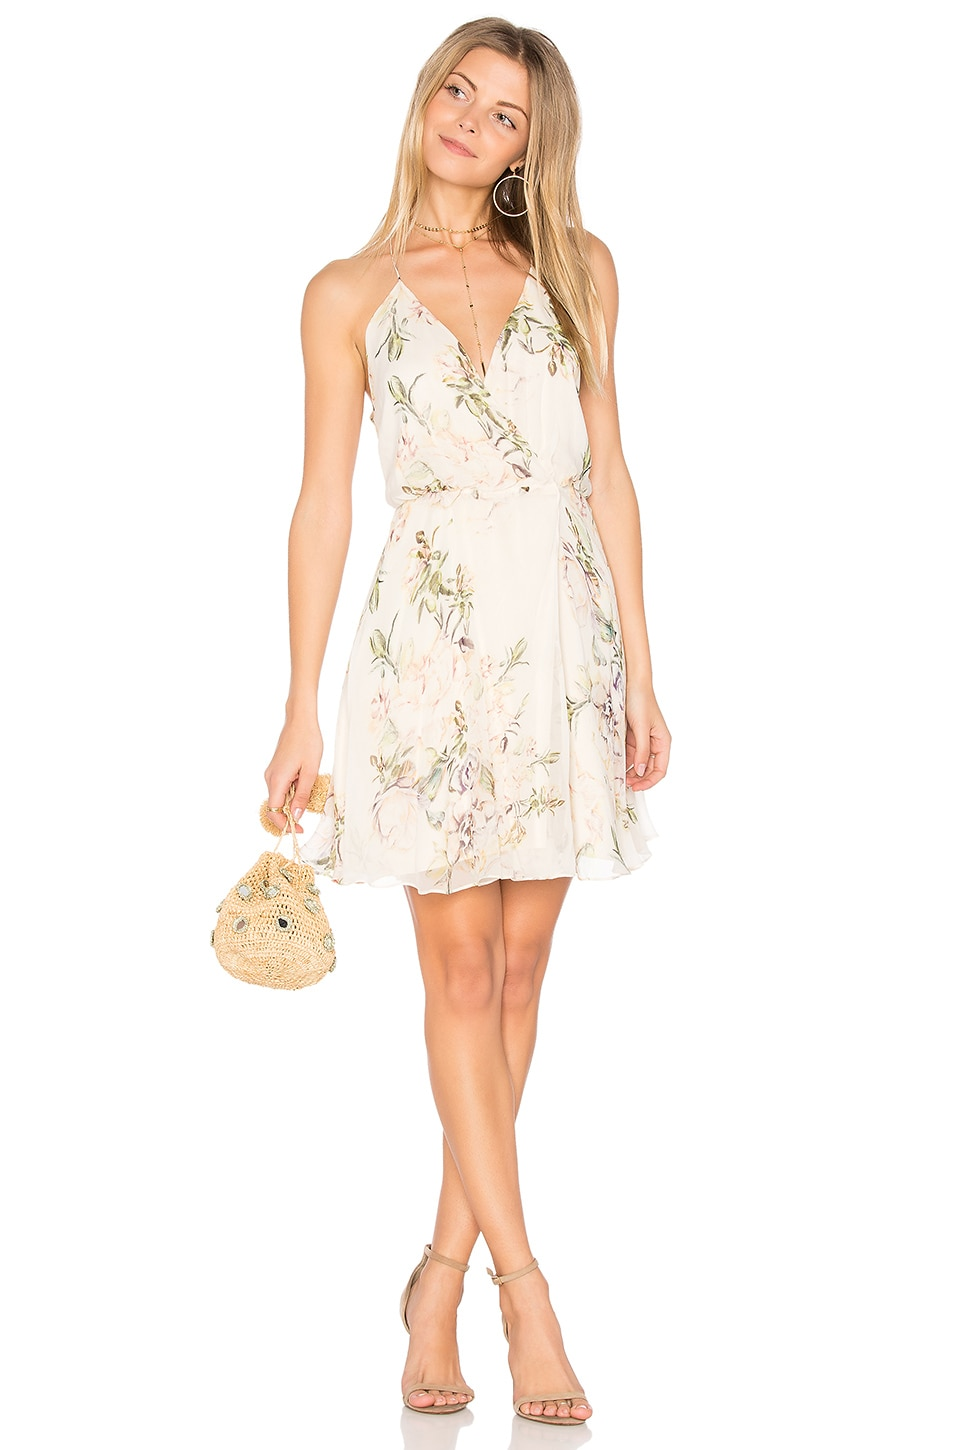 The Harmony Dress by Haute Hippie